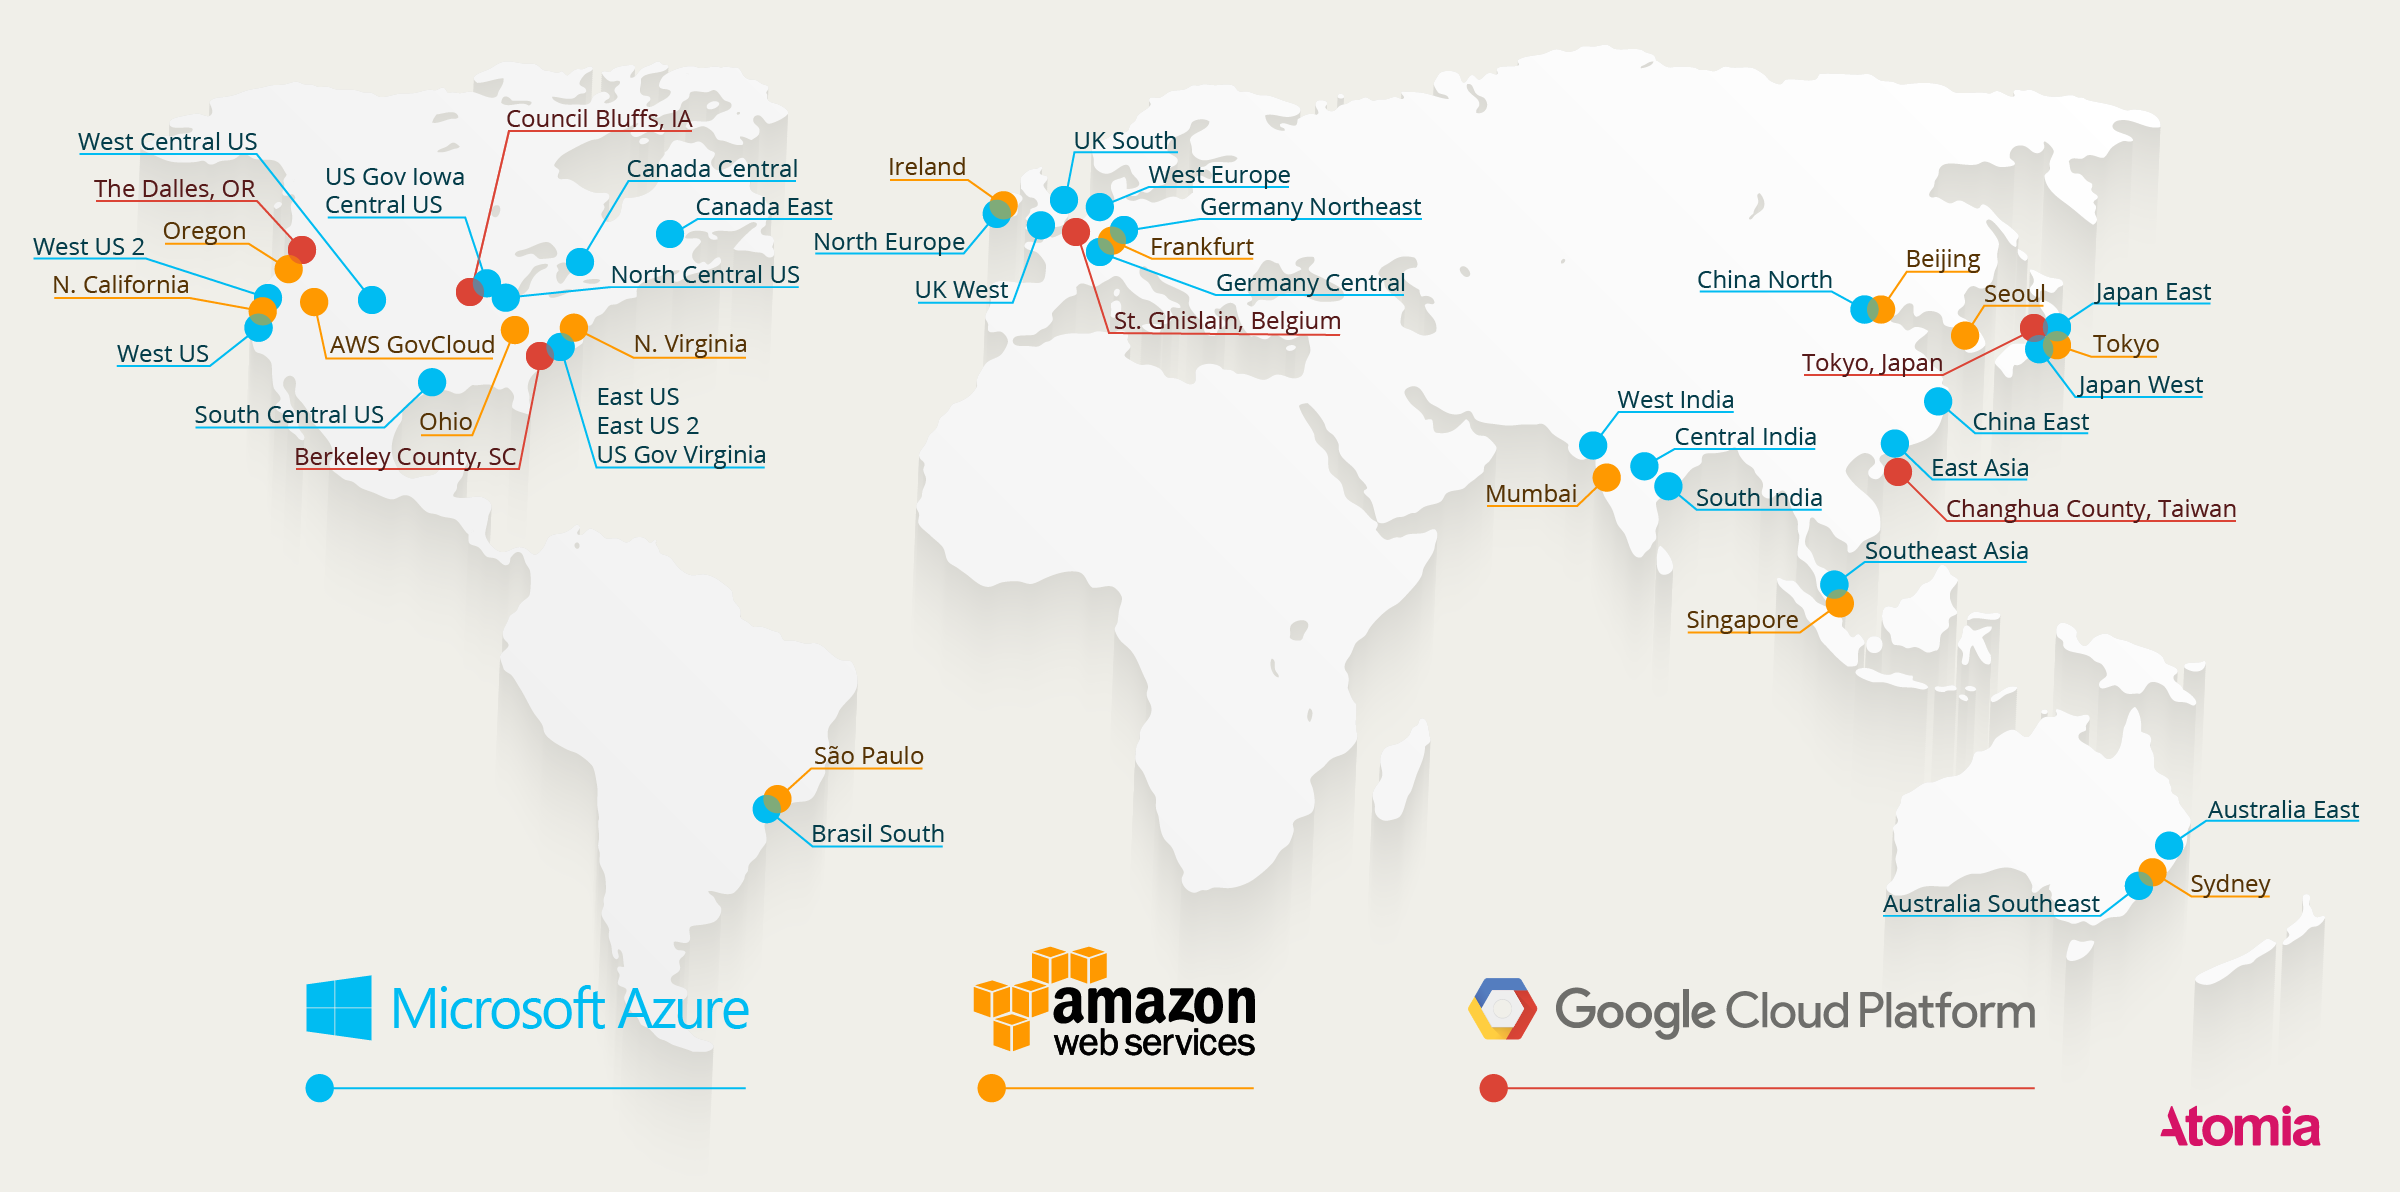 Comparing the geographical coverage of AWS, Azure and Google Cloud